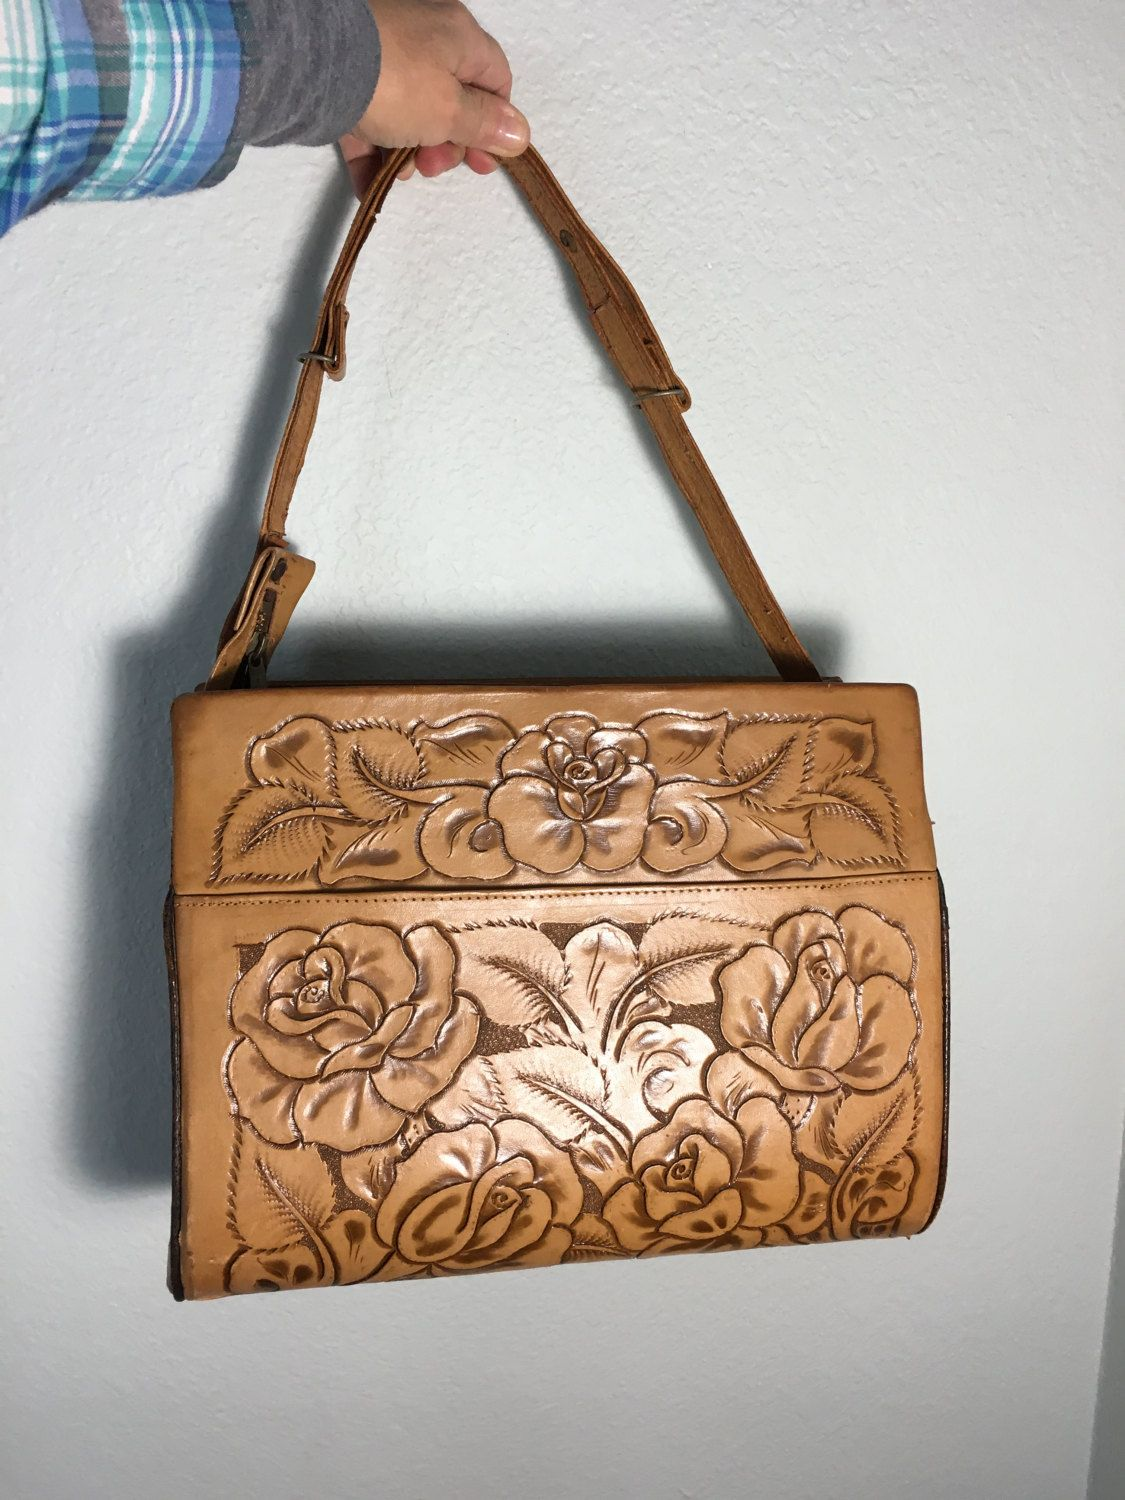 Vintage Hand Tooled Fl Purse Large Leather Shoulder Bag Made In Mexico Festival Hippie Boho Handbag By Vintagecrazy On Etsy